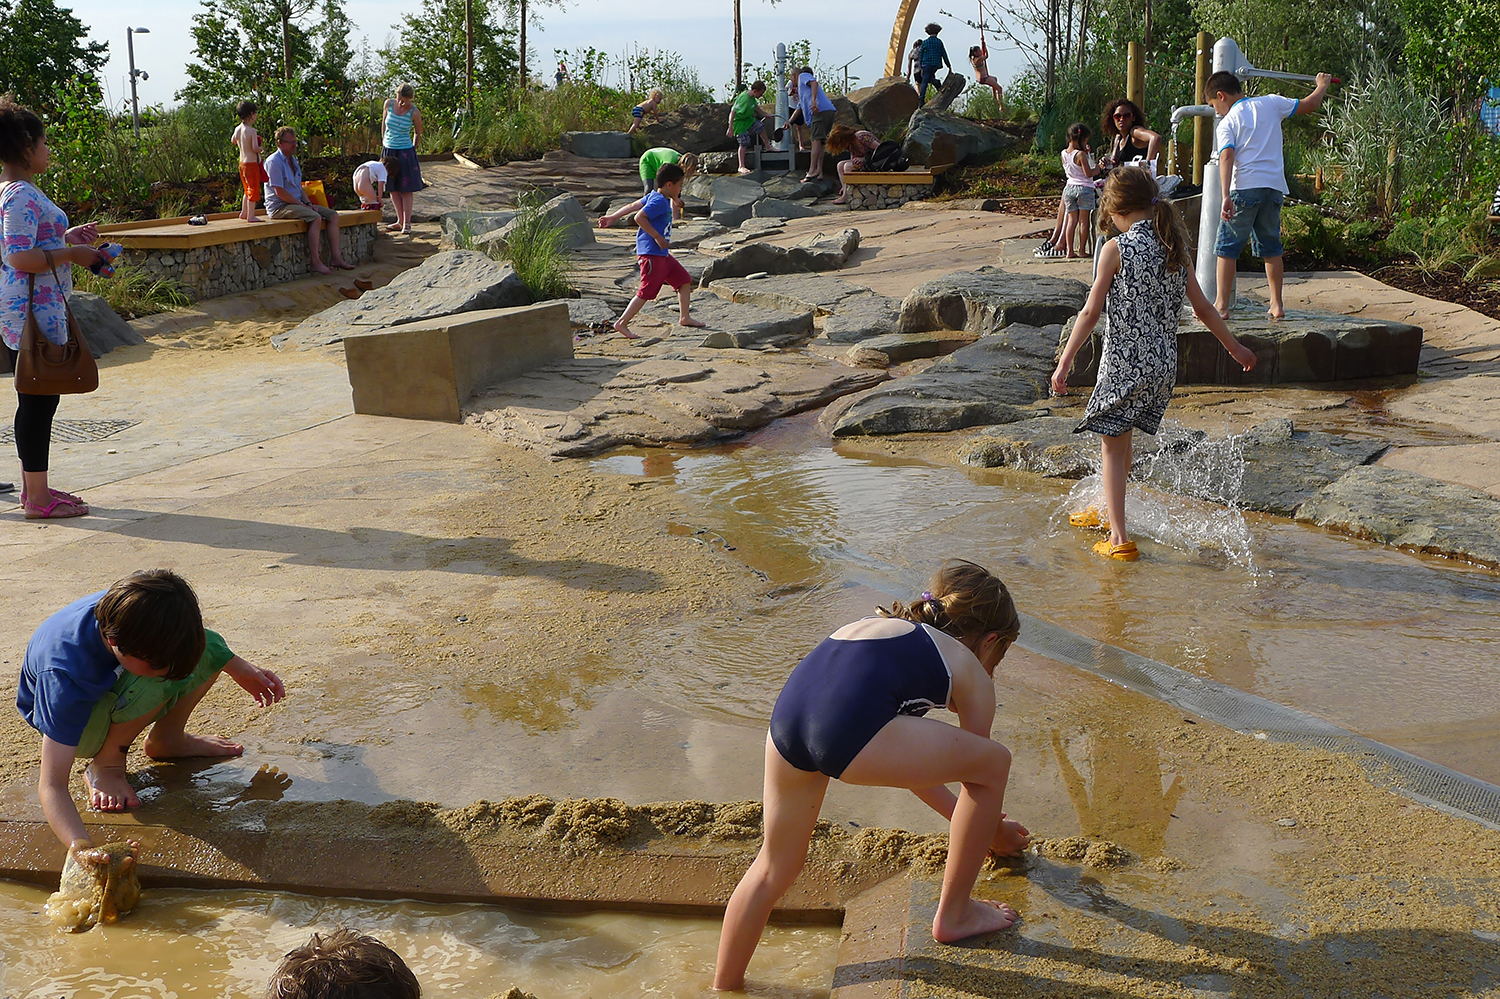 Tumbling Bay Playground by LUC « Landscape Architecture